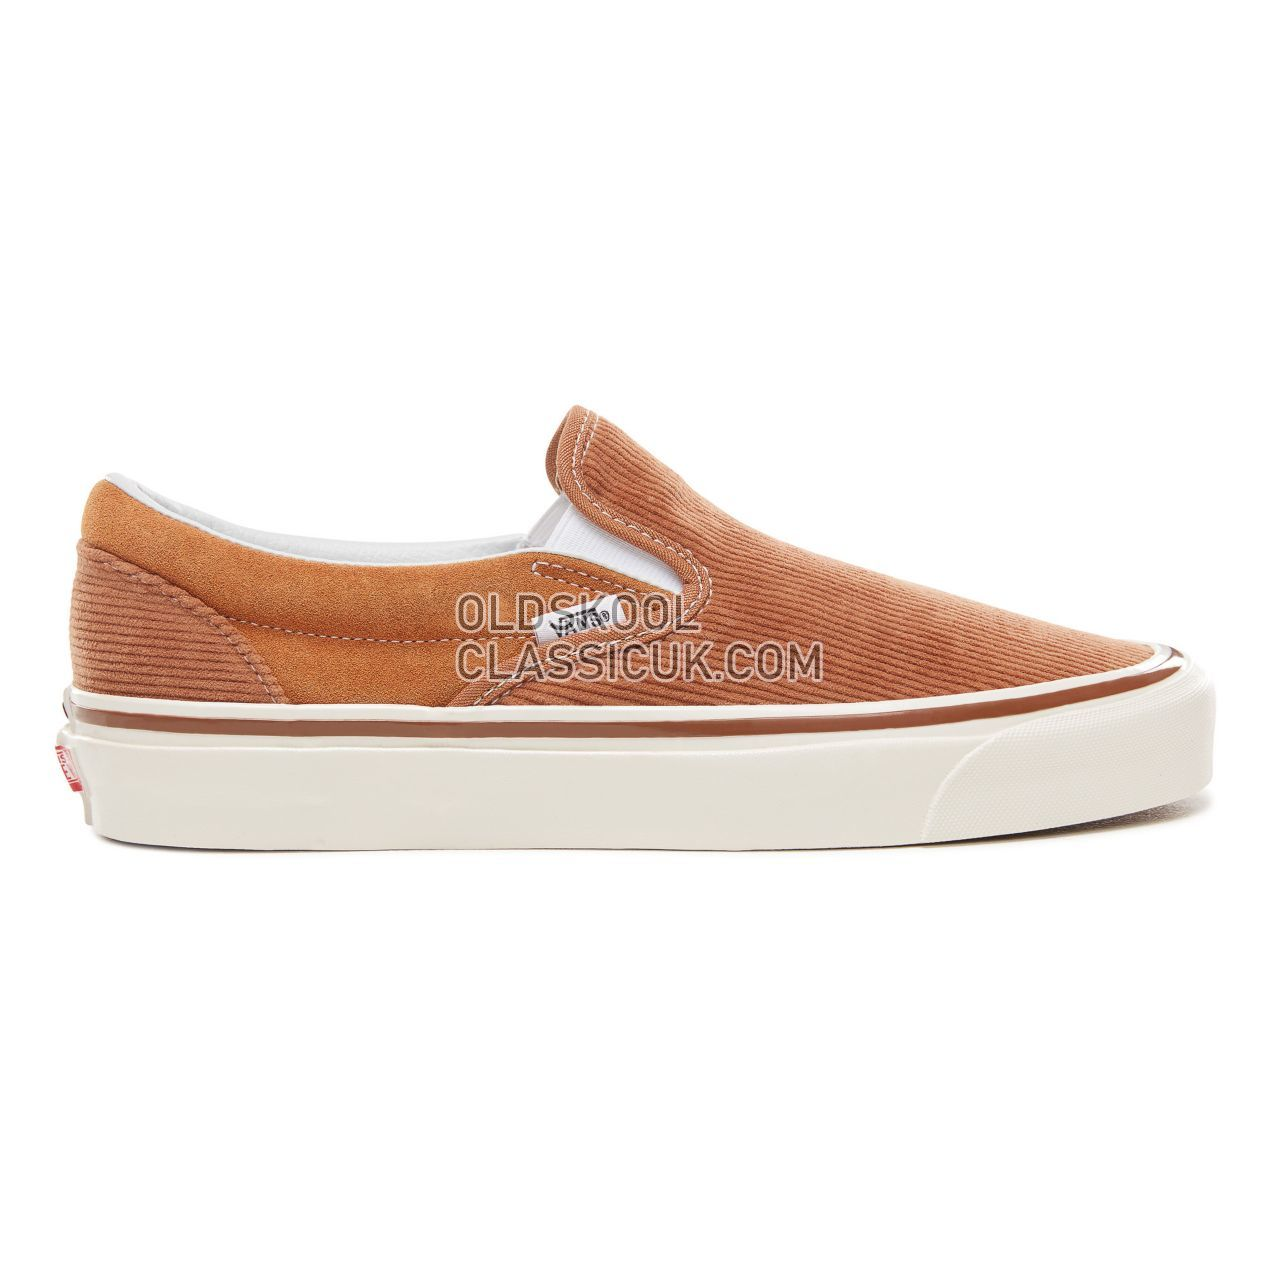 Vans Anaheim Factory Classic 98 Dx Sneakers Mens (Anaheim Factory) Og Hart Brown/Corduroy VN0A3JEXUM4 Shoes